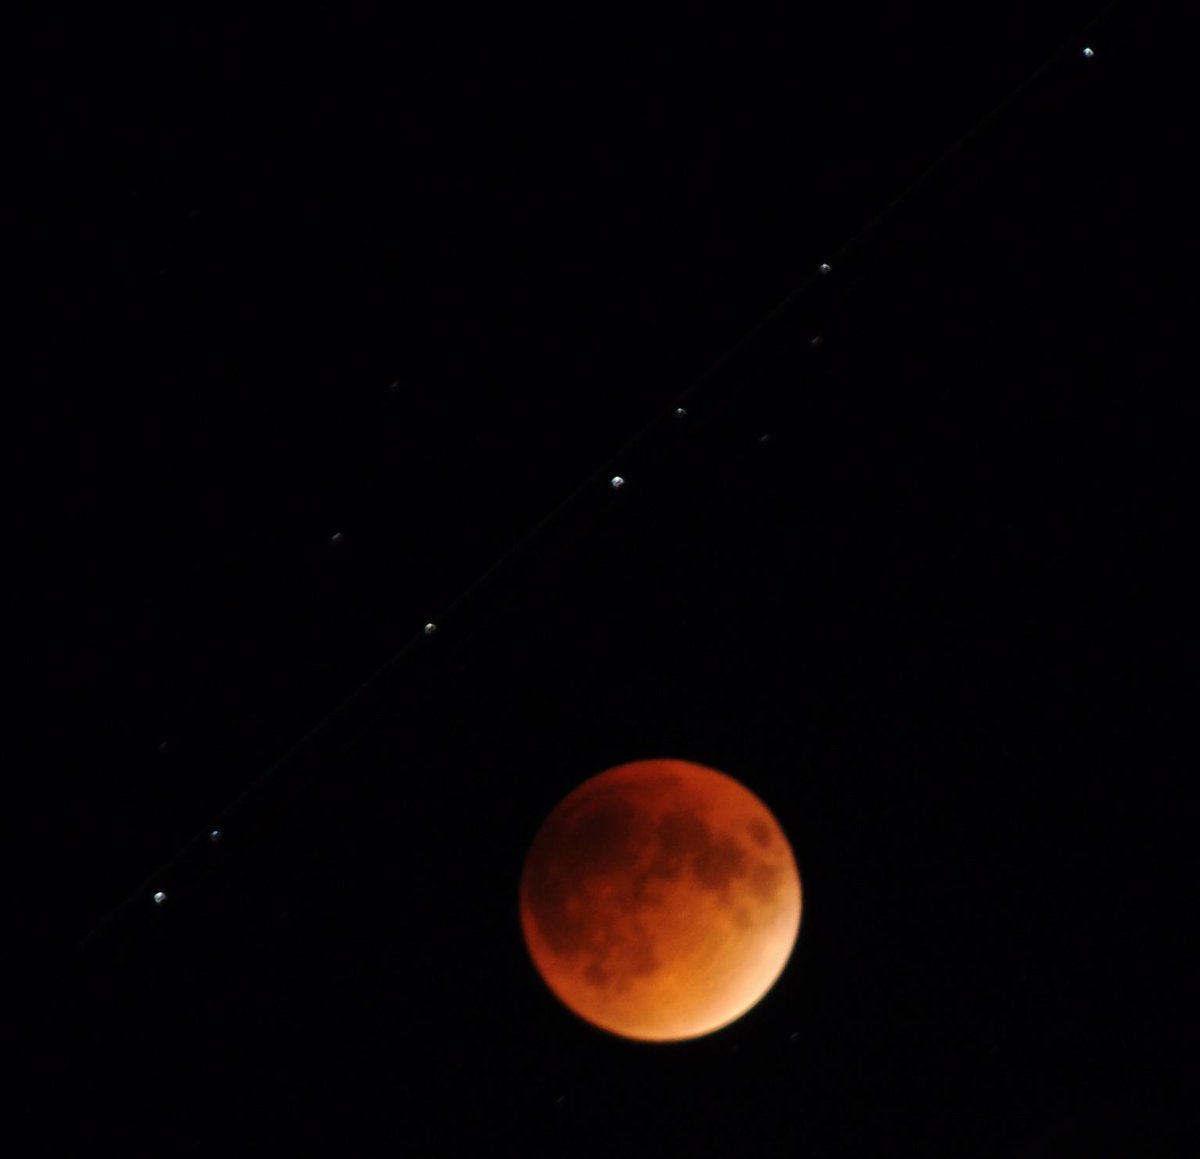 Full #SuperBloodMoon eclipse. F/5.6 4 second exposure, ISO 800. Caught a plane flying by. http://t.co/qwSNV5GfXS